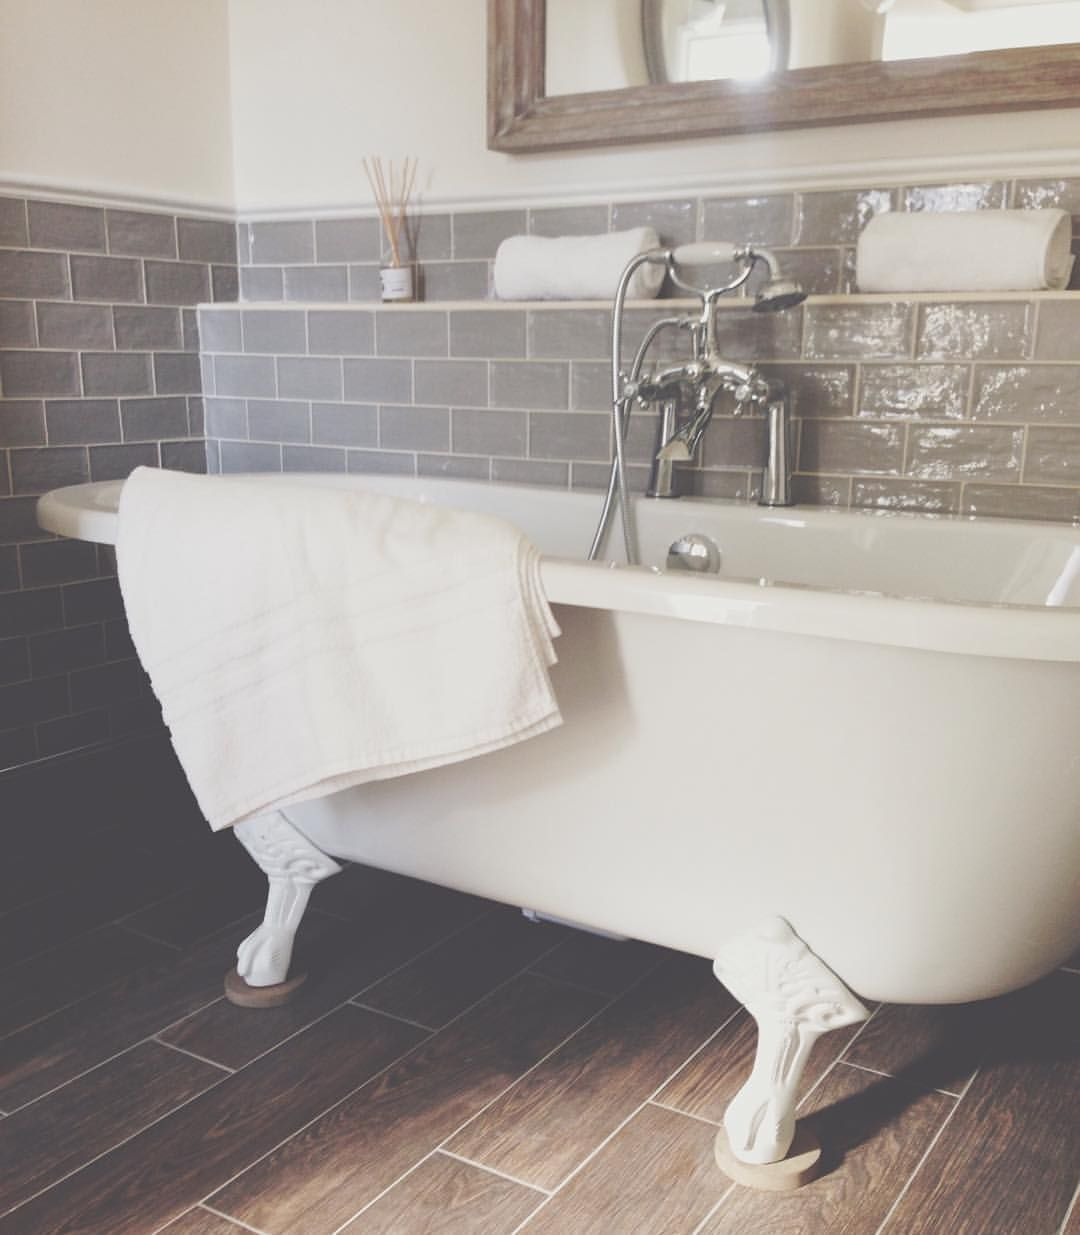 This is one of the roll top baths at the kedleston country house this is one of the roll top baths at the kedleston country house bathrooms bathroom floor tilesdownstairs dailygadgetfo Image collections